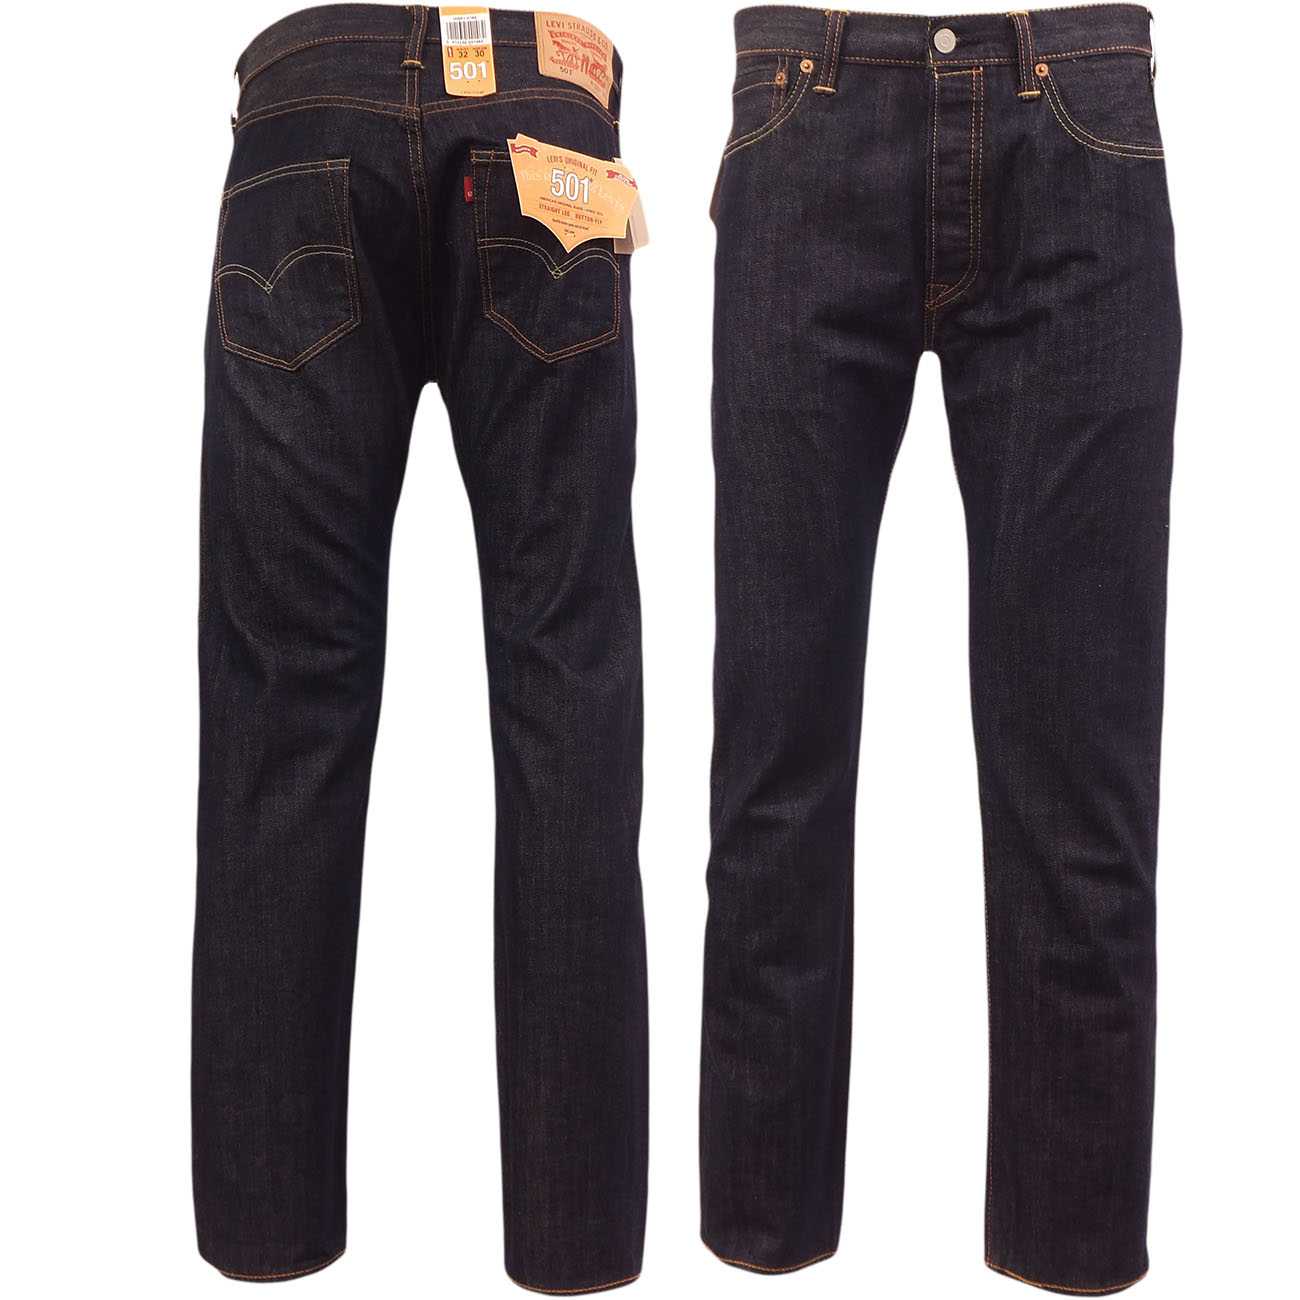 levi strauss 501 straight leg denim jean 39 marlon 39 dark 30 32 34 36 38 ebay. Black Bedroom Furniture Sets. Home Design Ideas